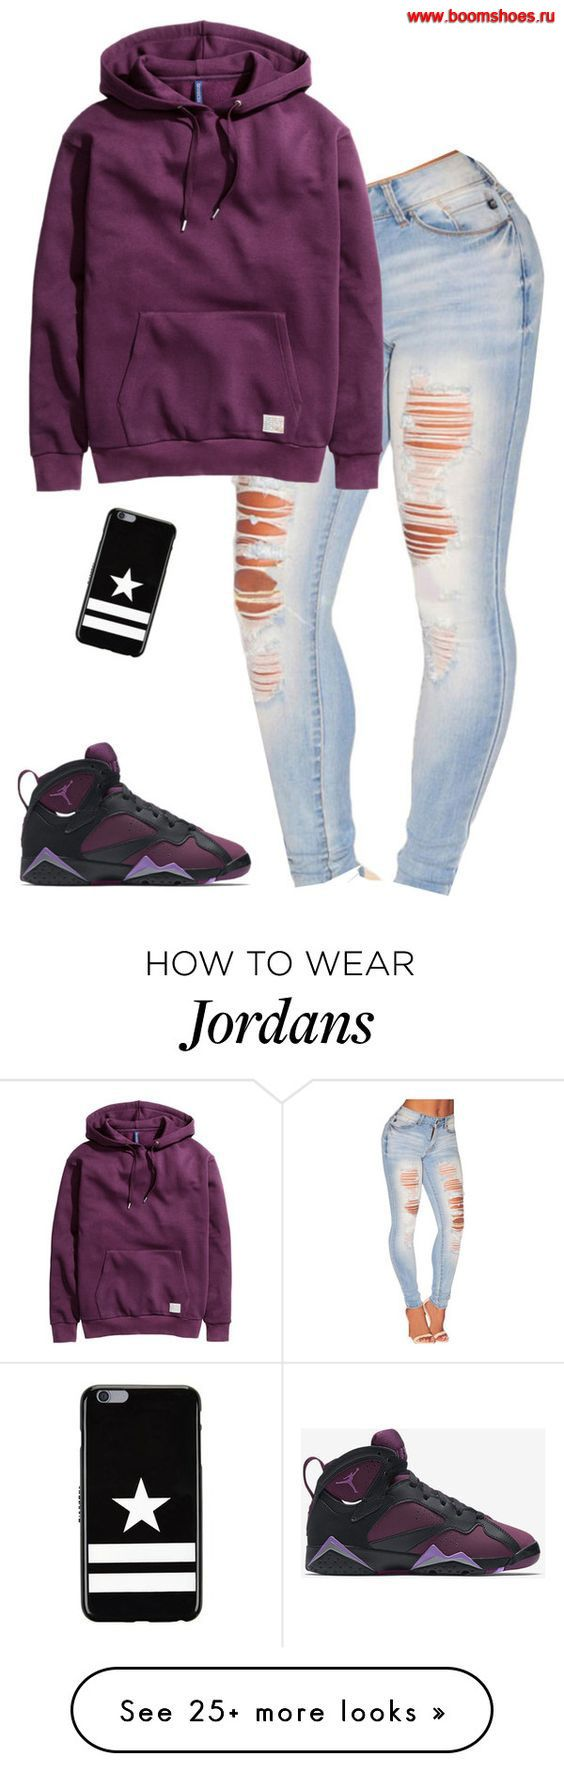 jordan shoes collection 2017 casual women's dresses 748761